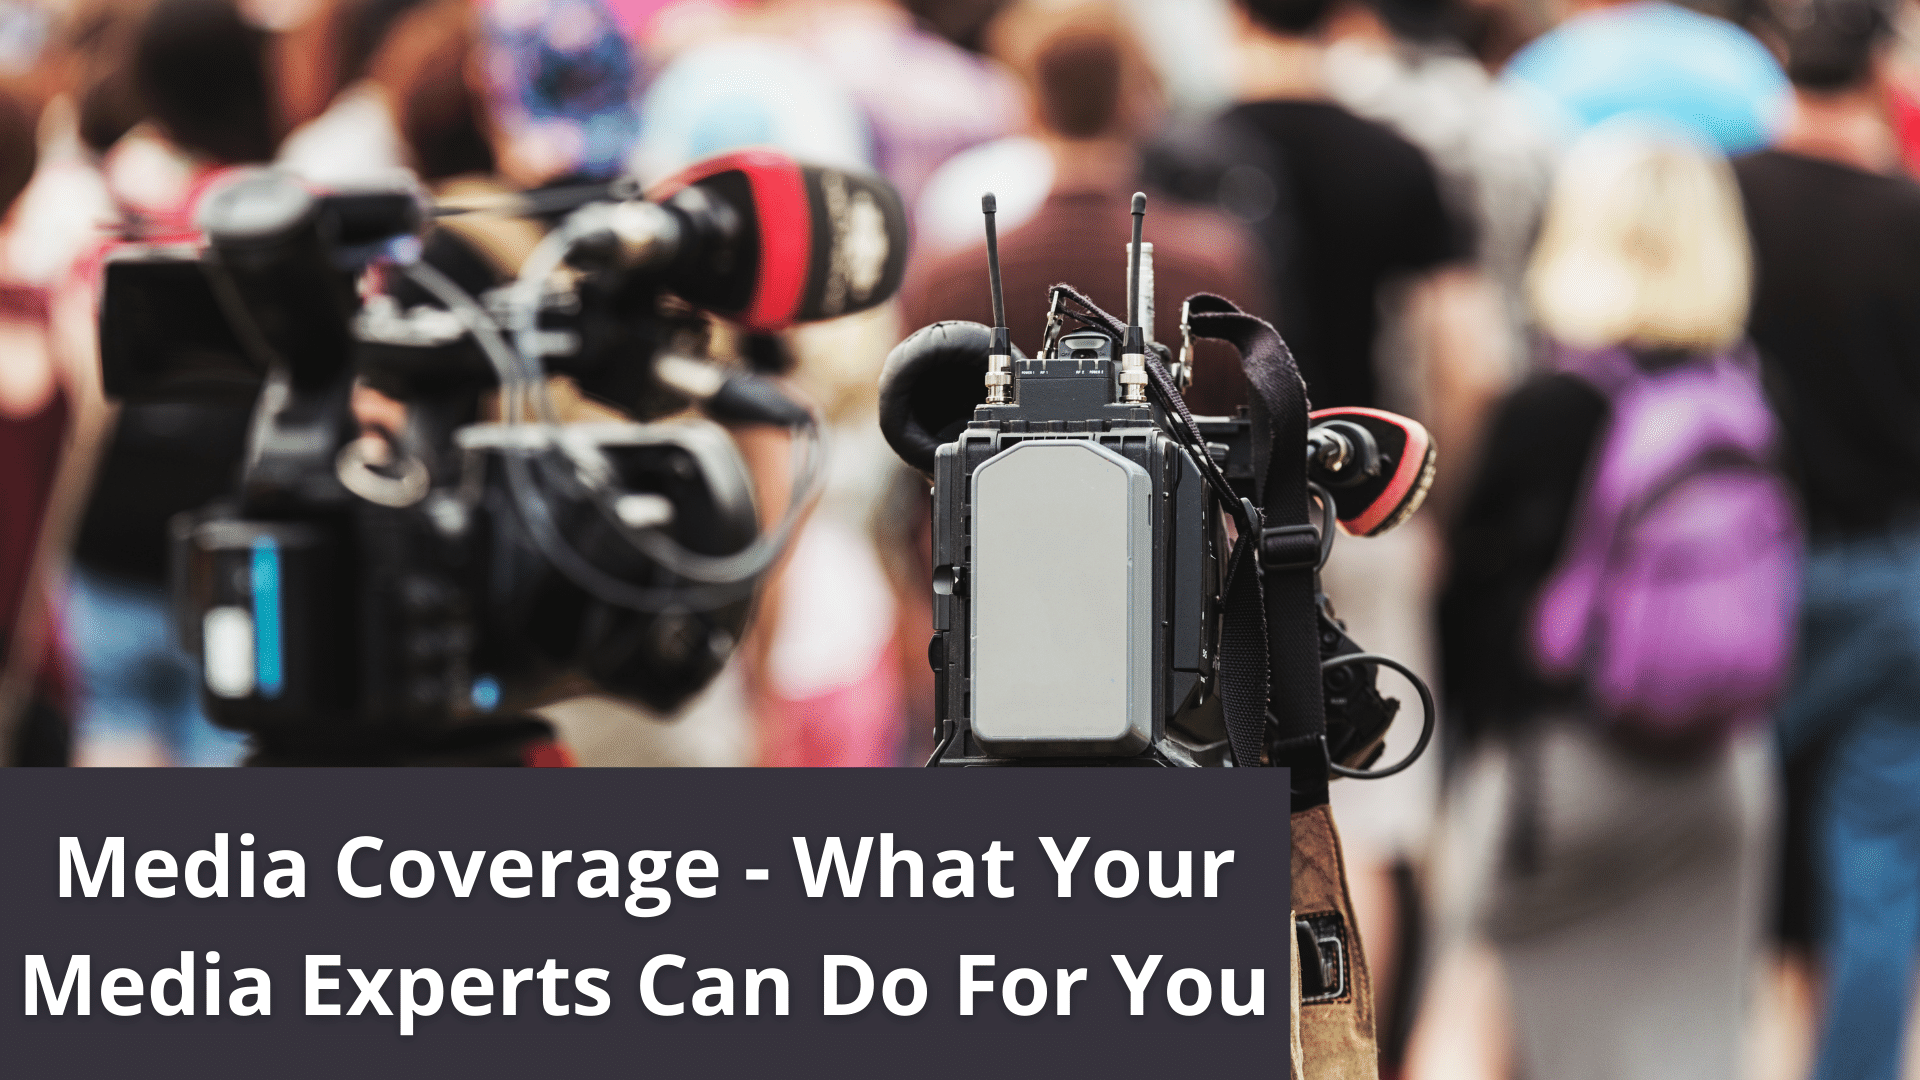 Media Coverage - What Your Media Experts Can Do For You